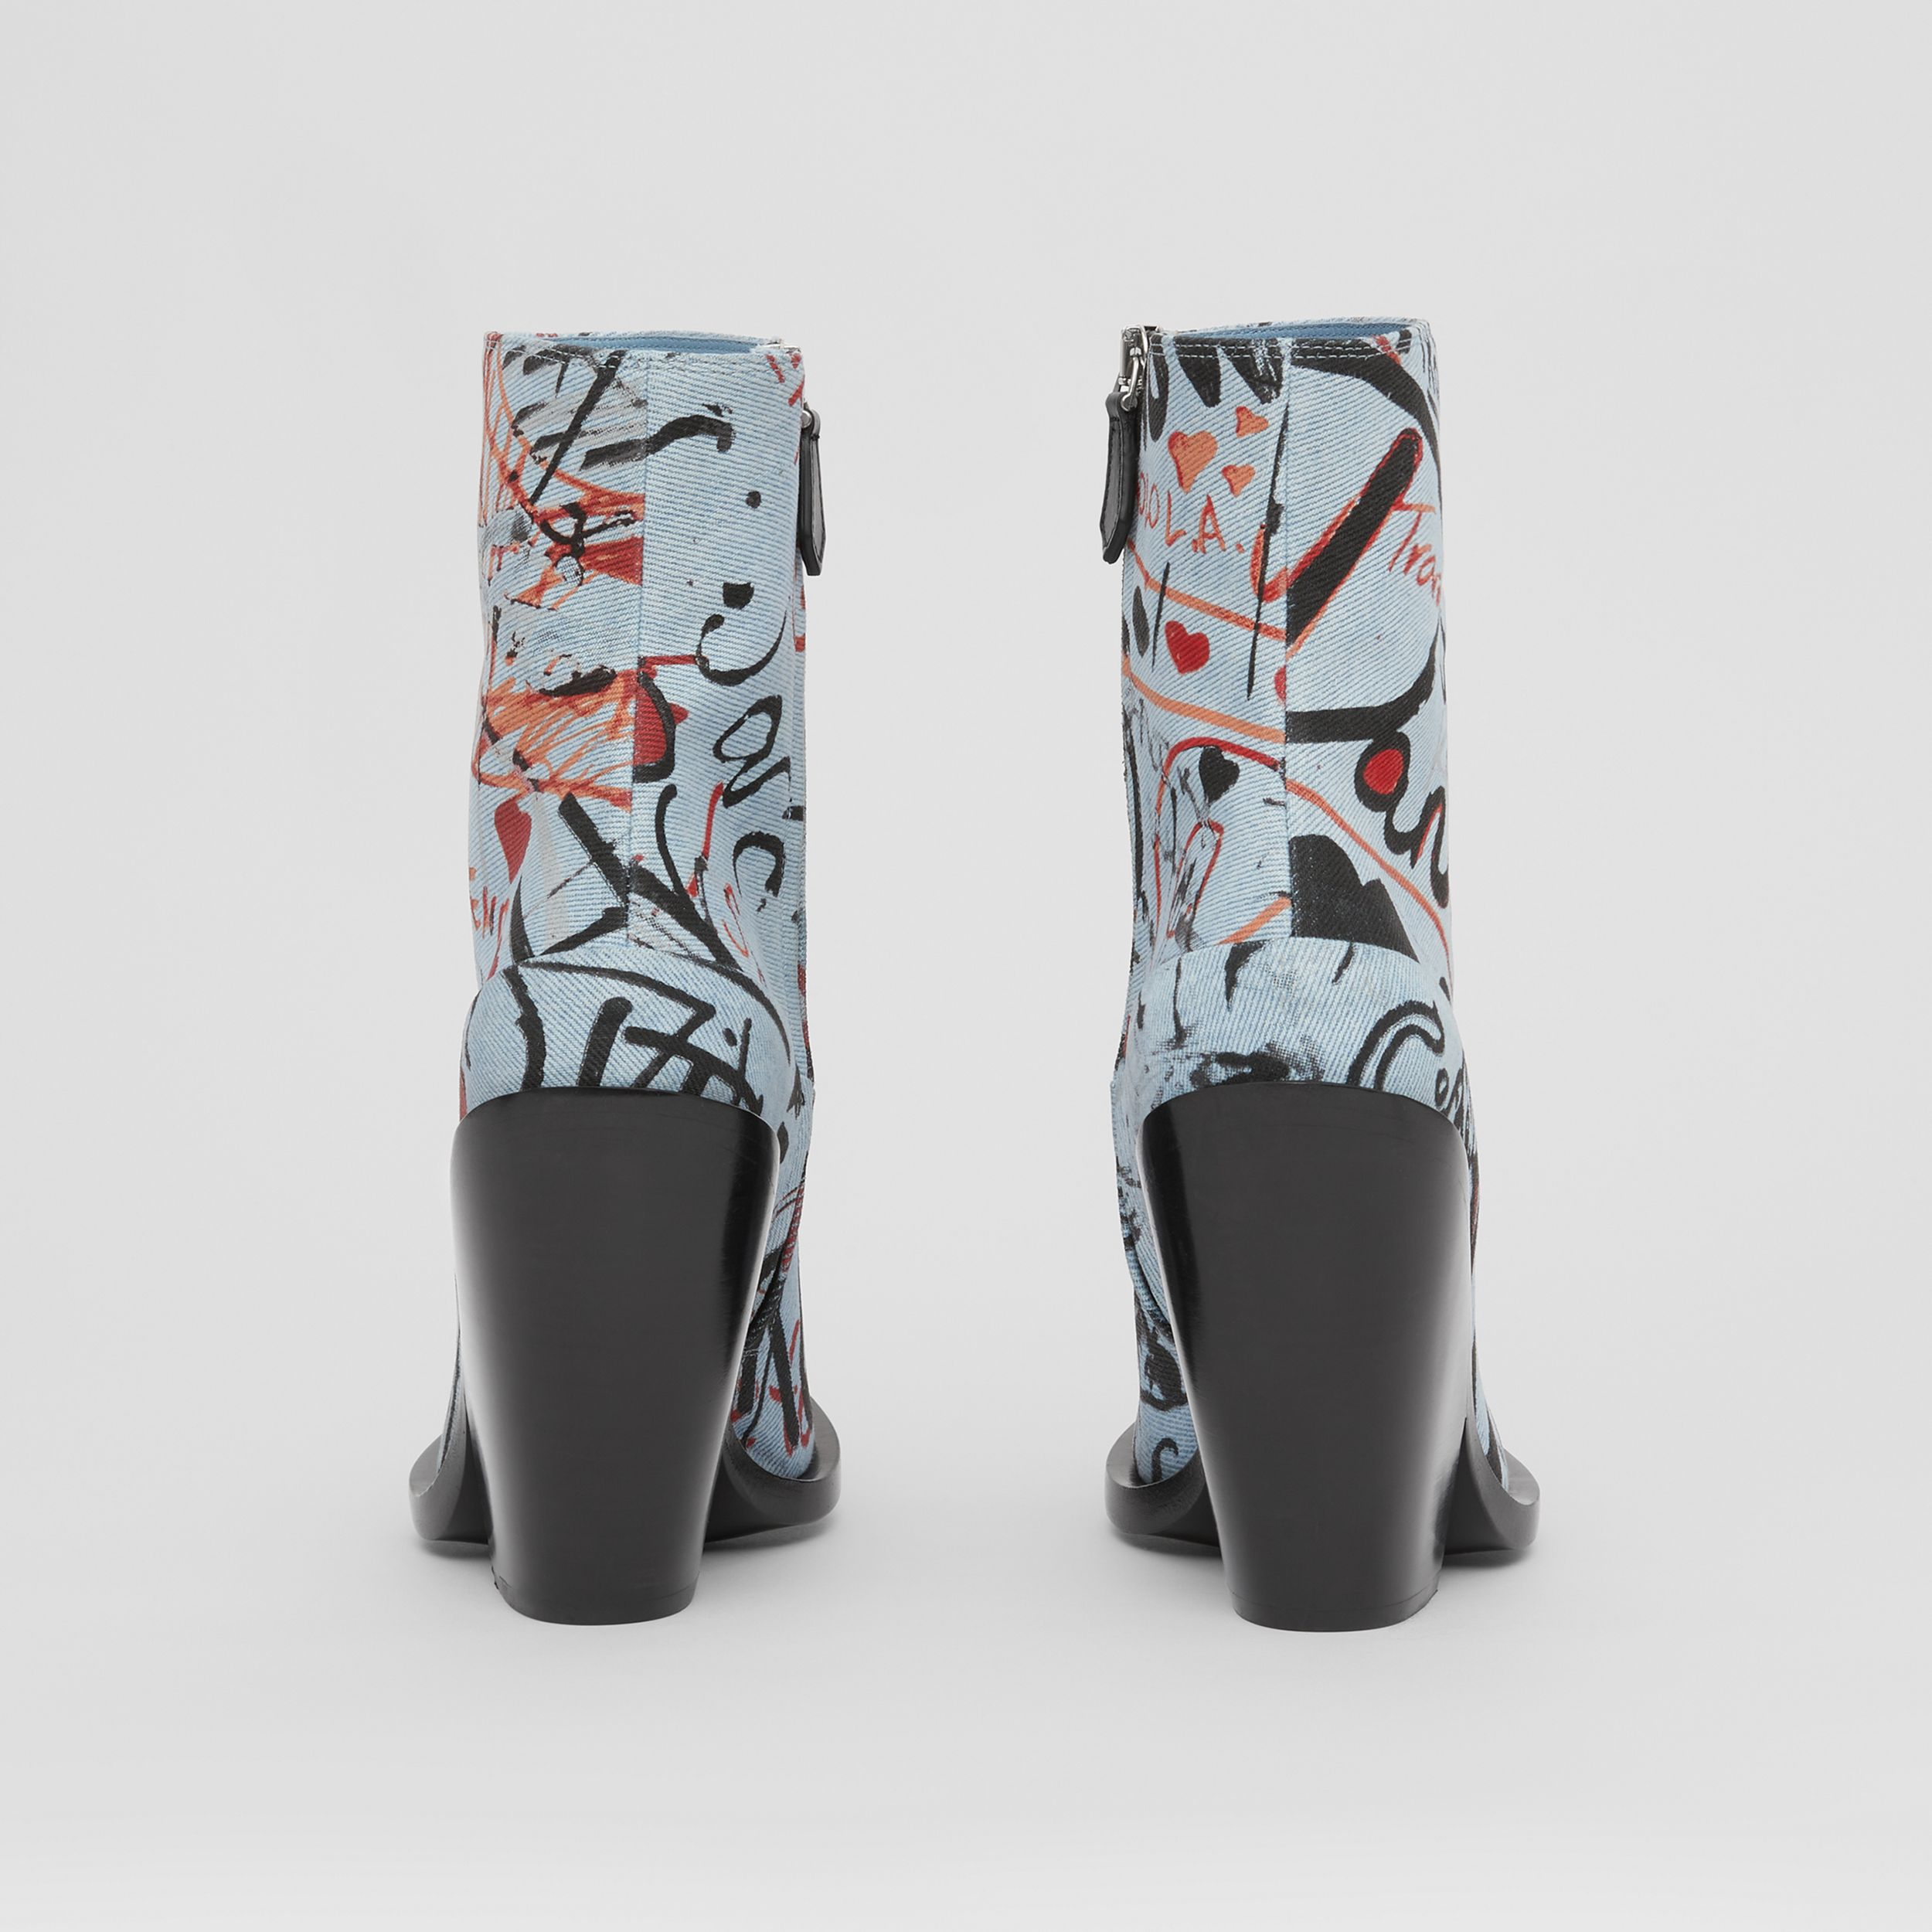 Graffiti Print Denim Block-heel Ankle Boots in Multicolour - Women | Burberry Hong Kong S.A.R. - 4